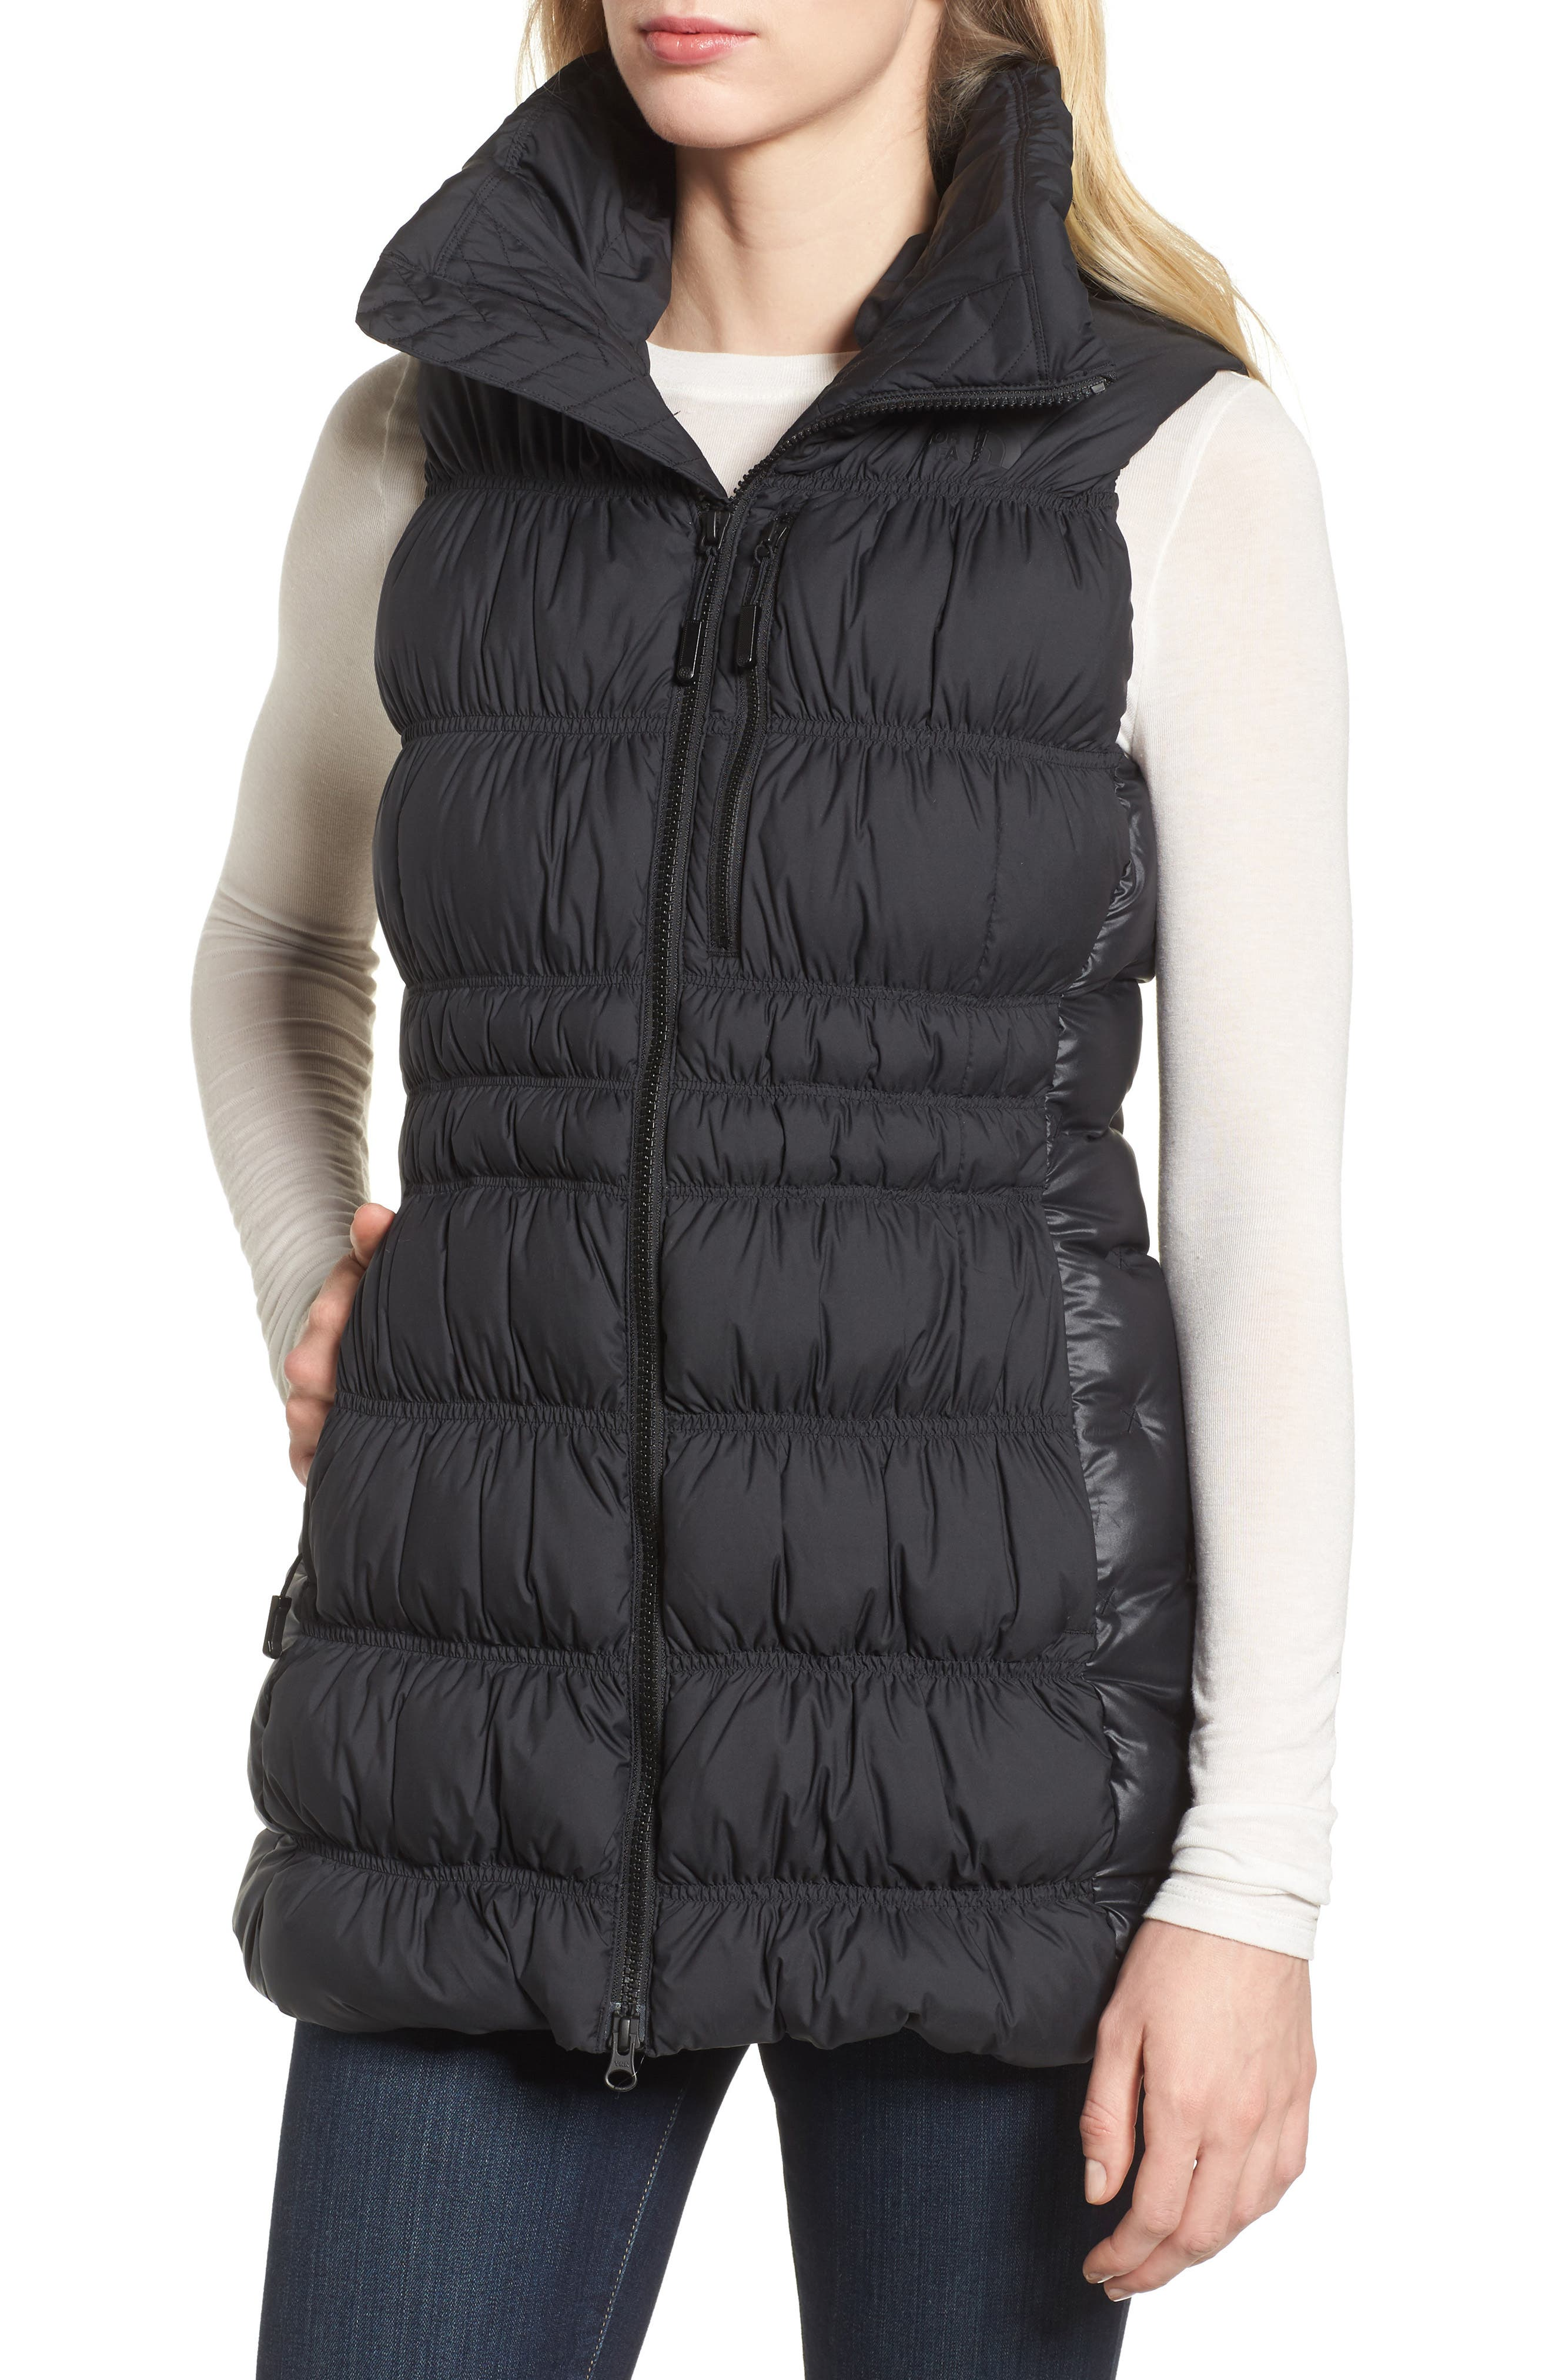 Cryos 800-Fill-Power Down Vest,                             Alternate thumbnail 8, color,